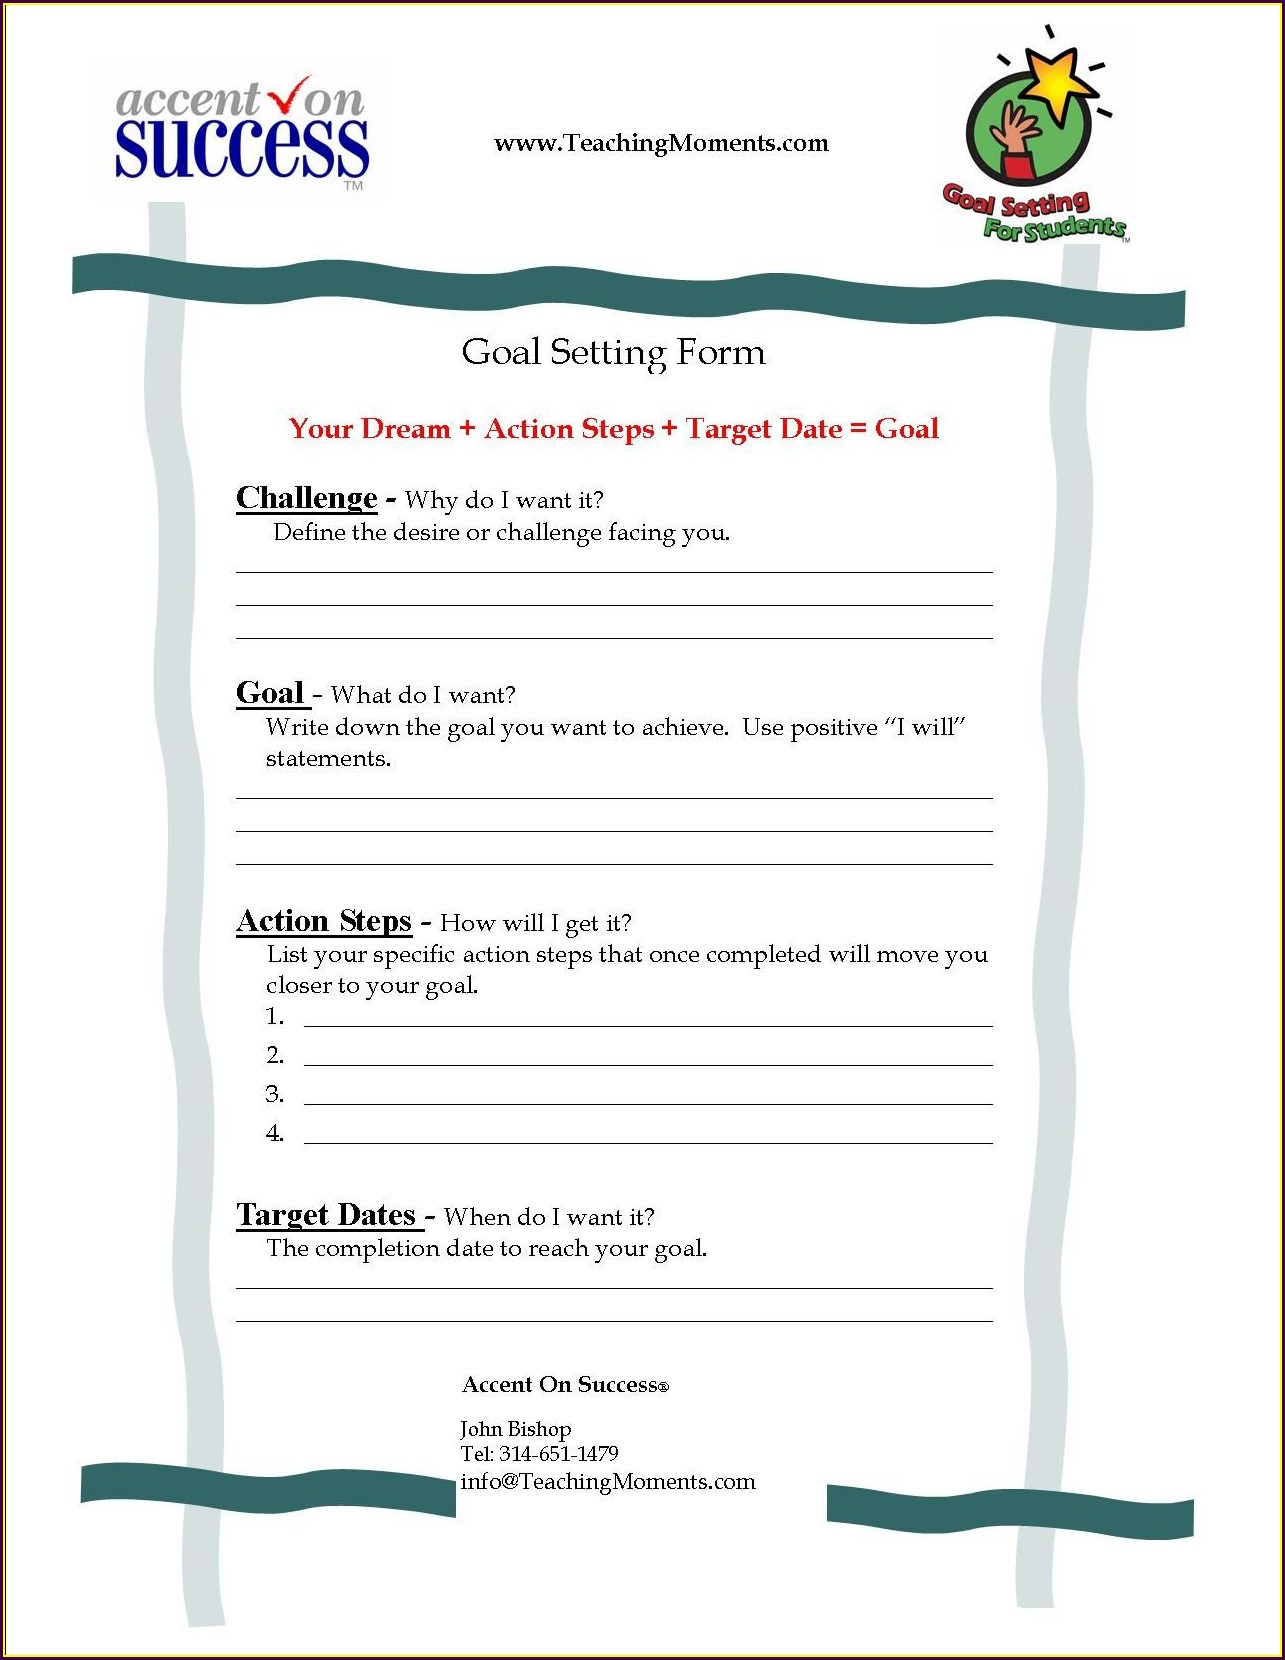 Goal Setting Lesson Plans For Middle School